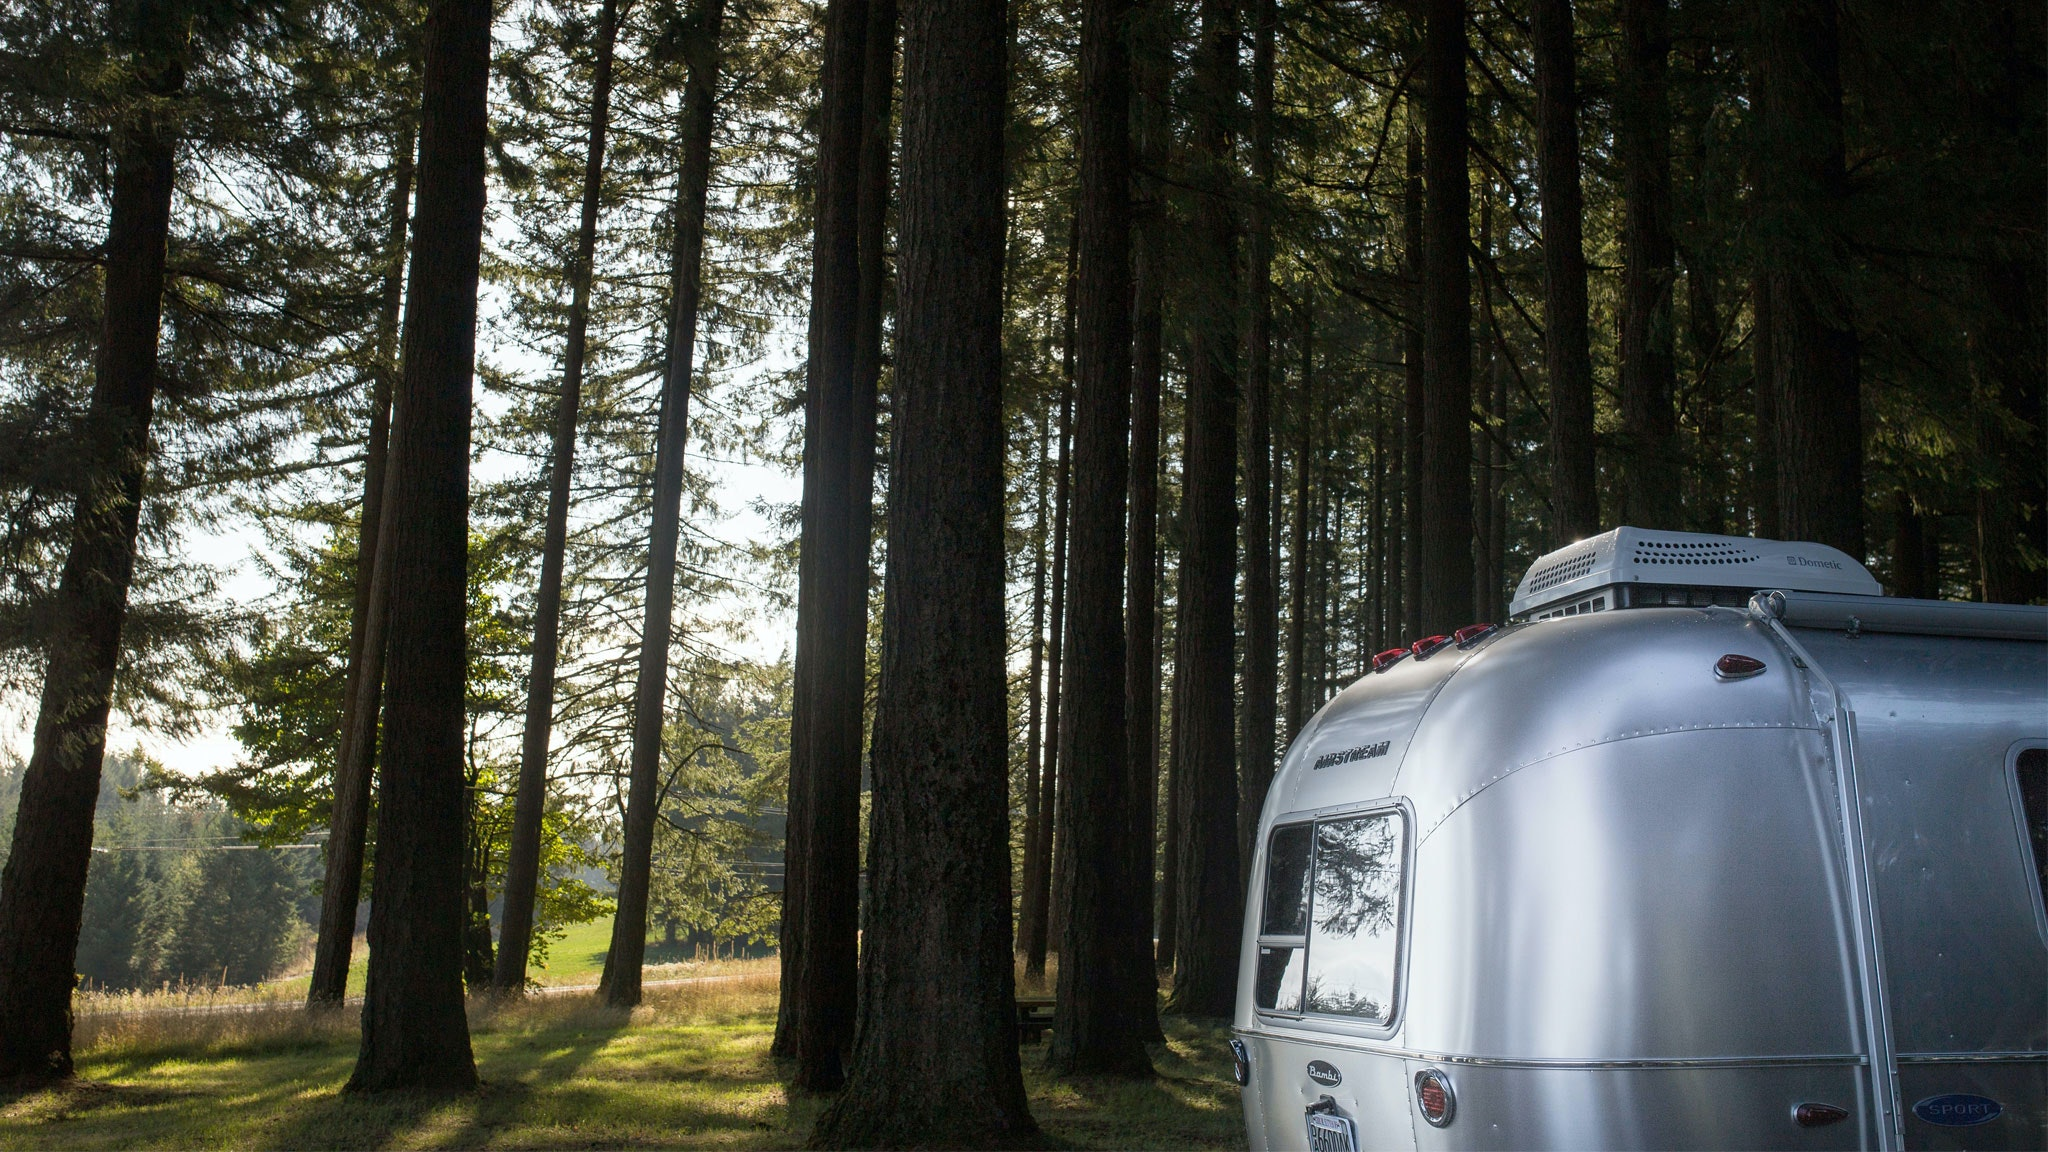 Airstream silver trailer sitting in a forest with trees